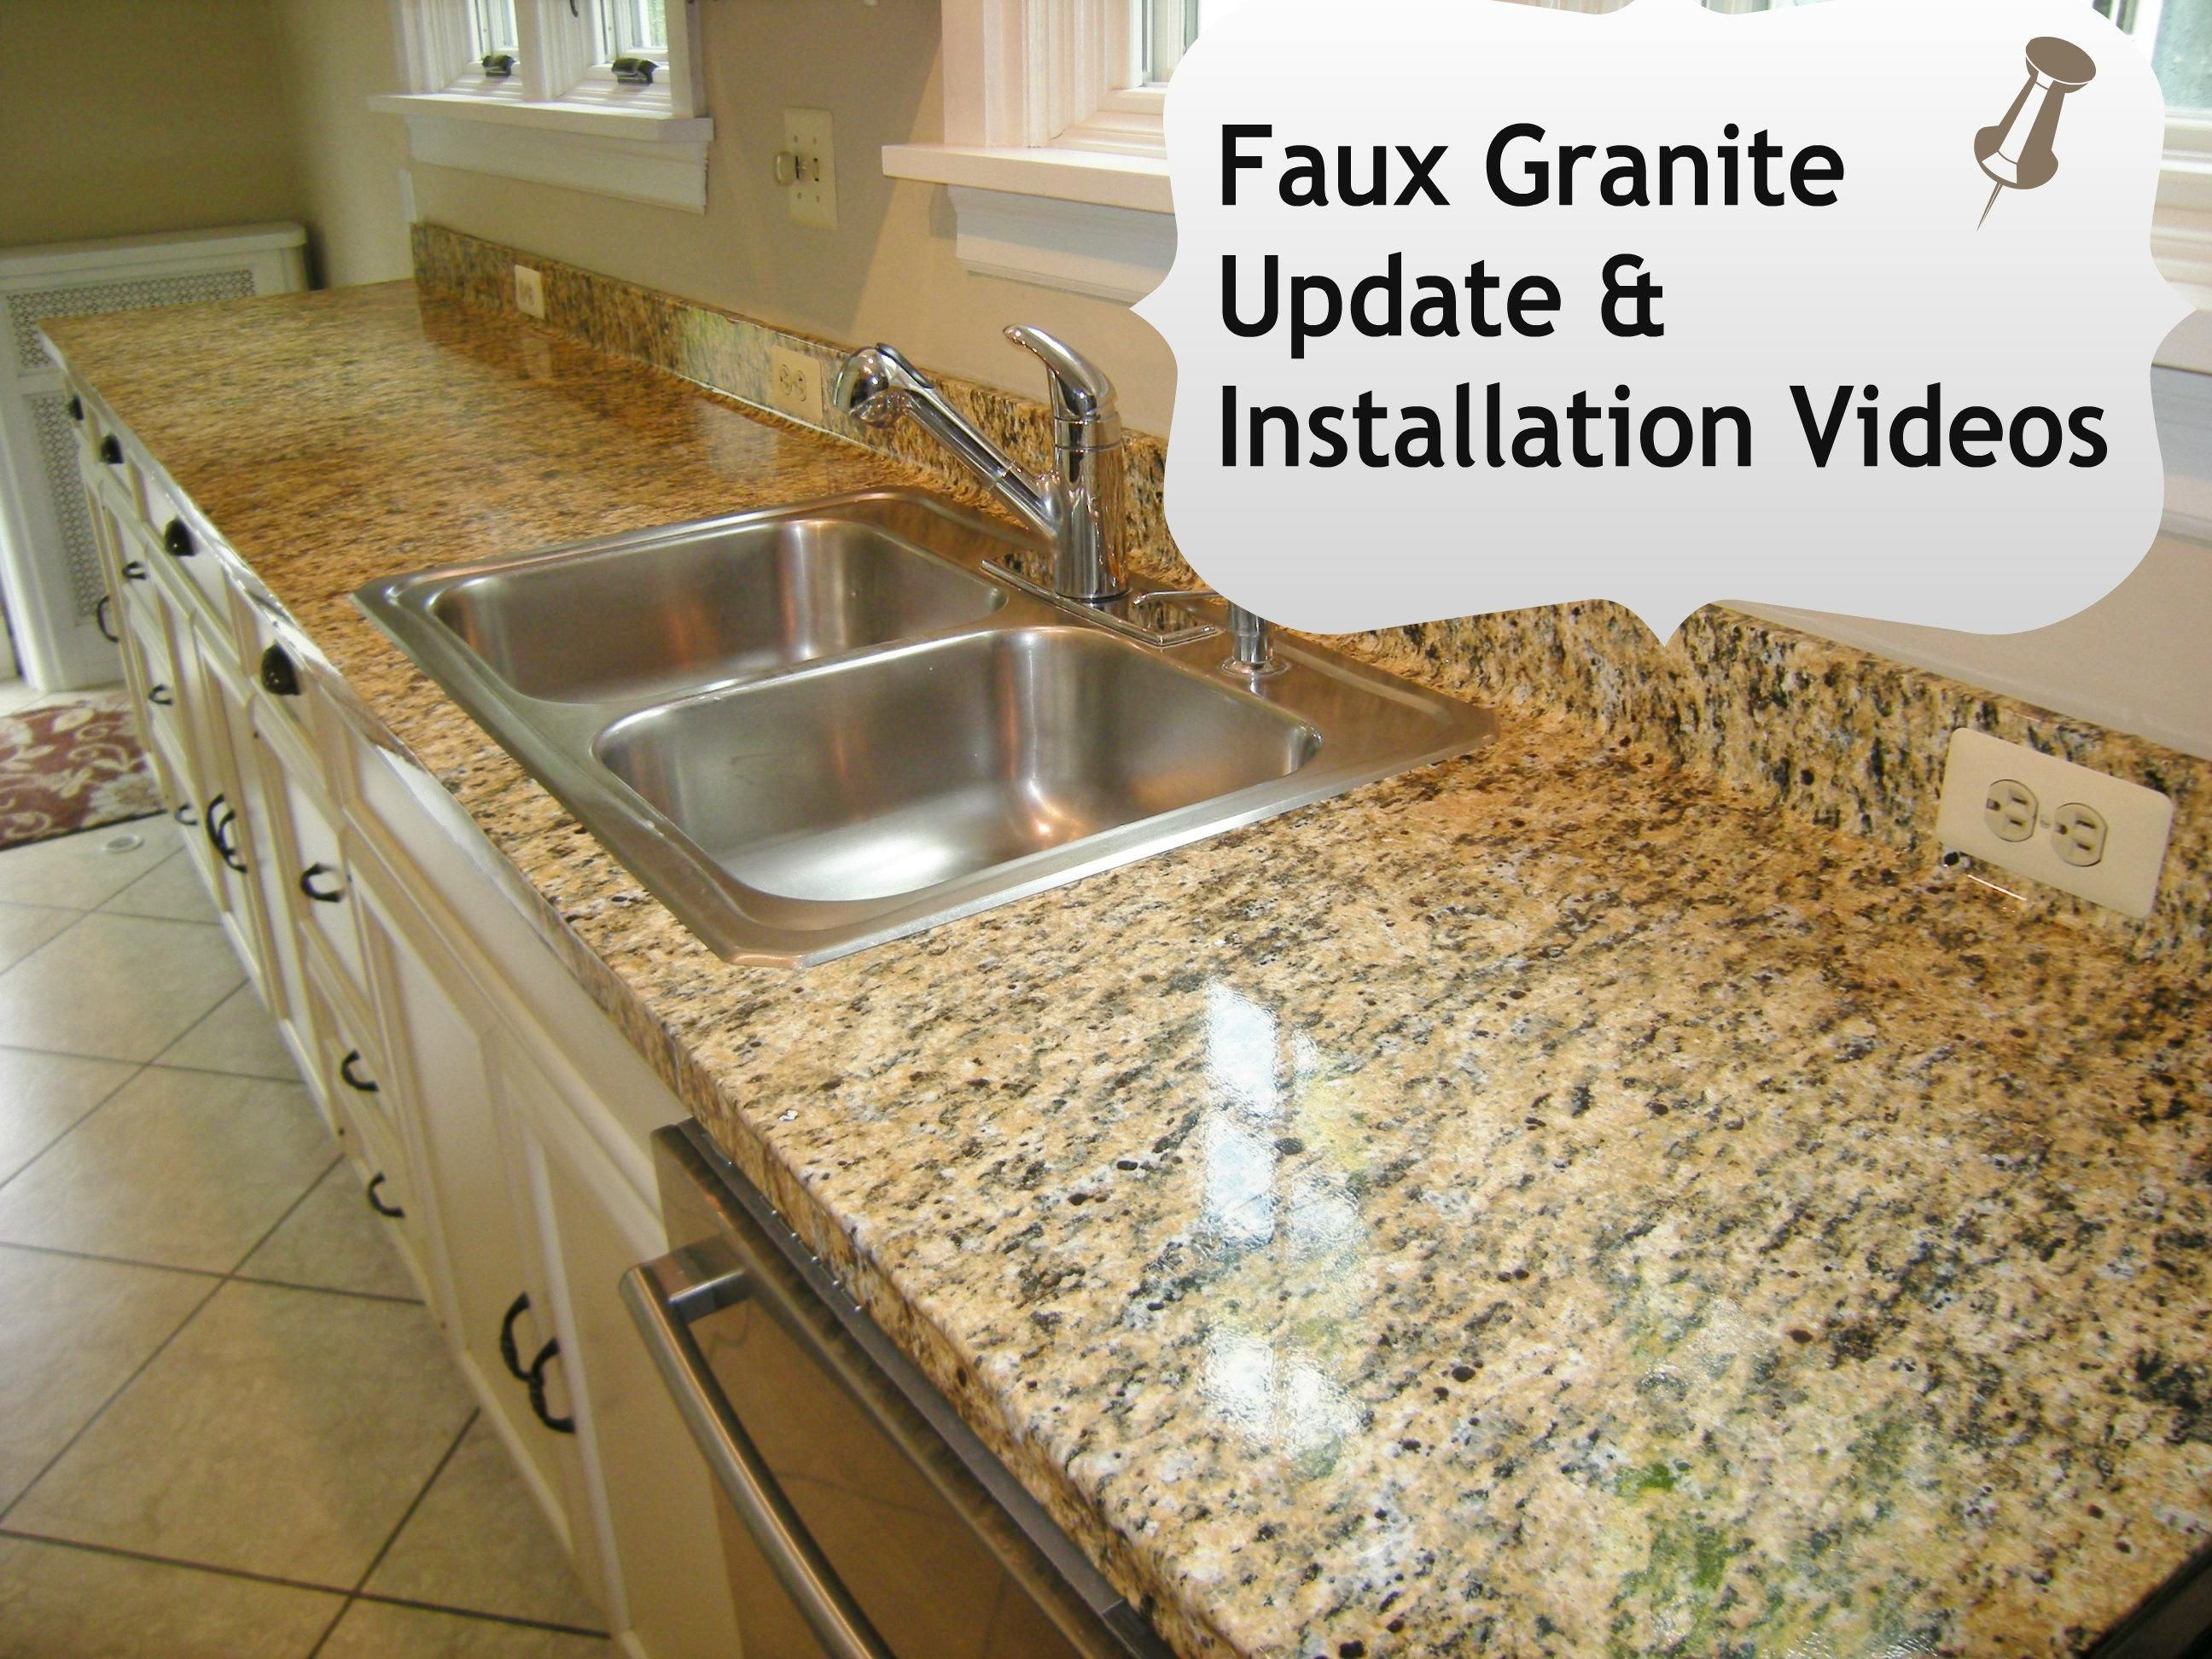 Faux granite kitchen counters in minutes with ez instant makeover faux granite countertops kitchen